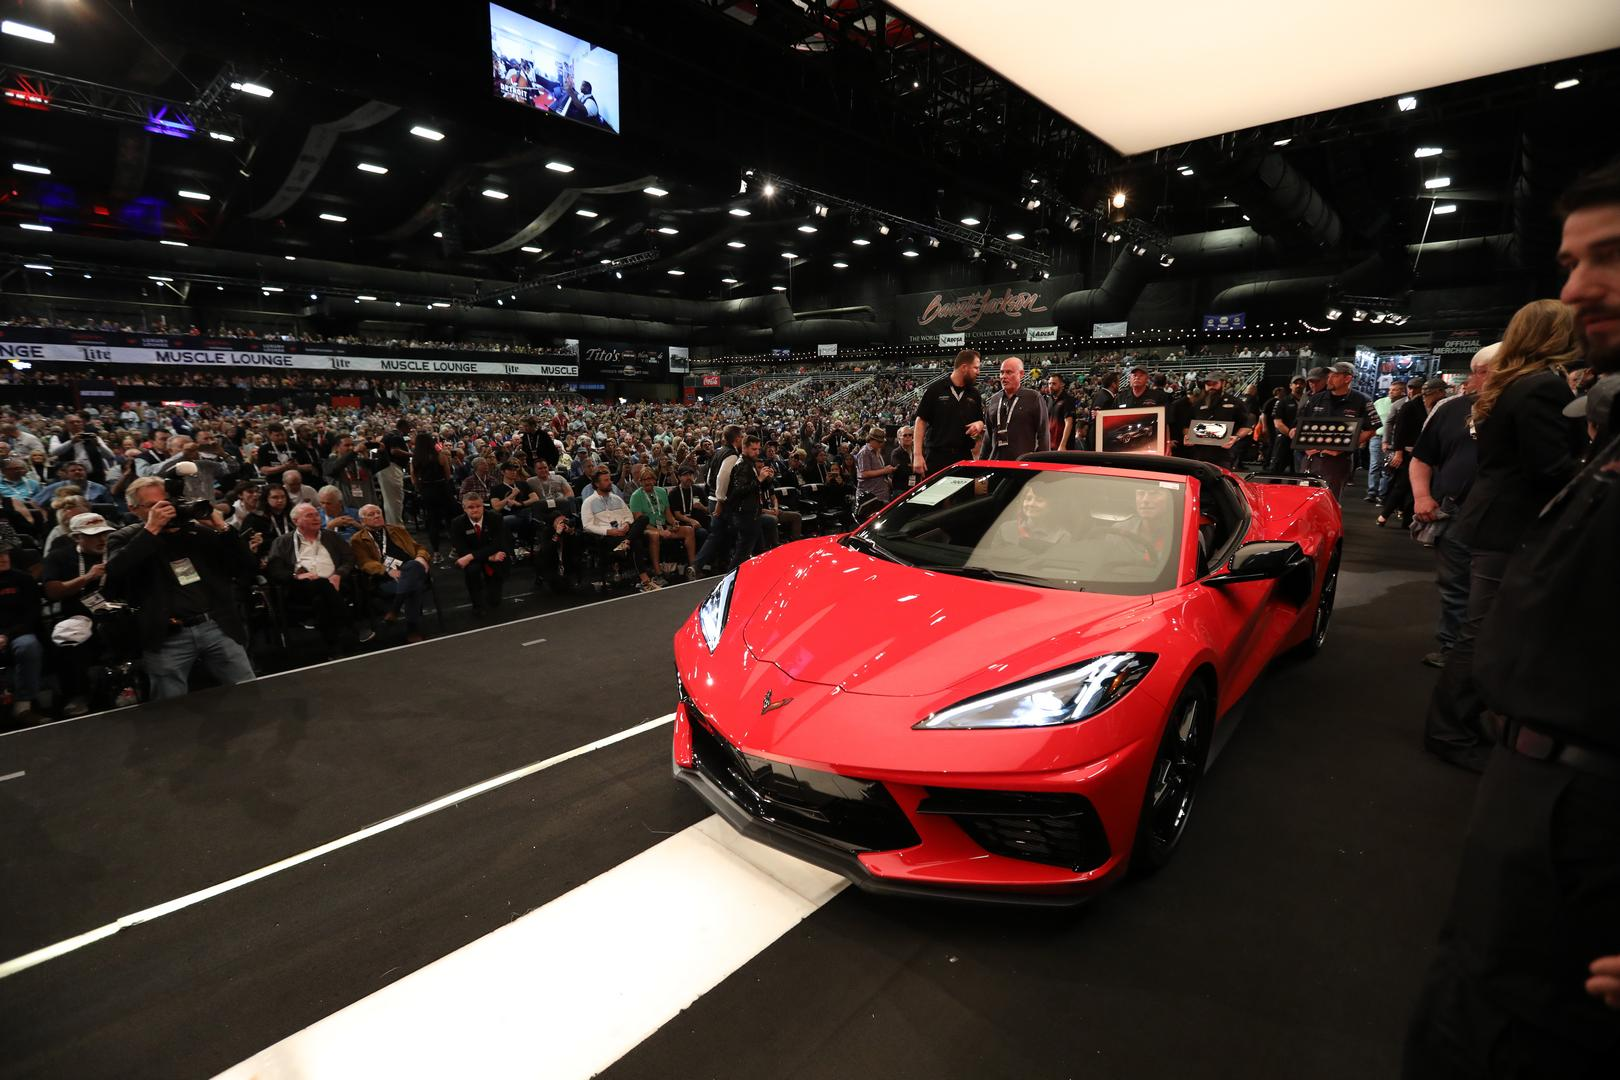 2020 Corvette C8 Stingray Auctions for Record $3,000,000 in the US